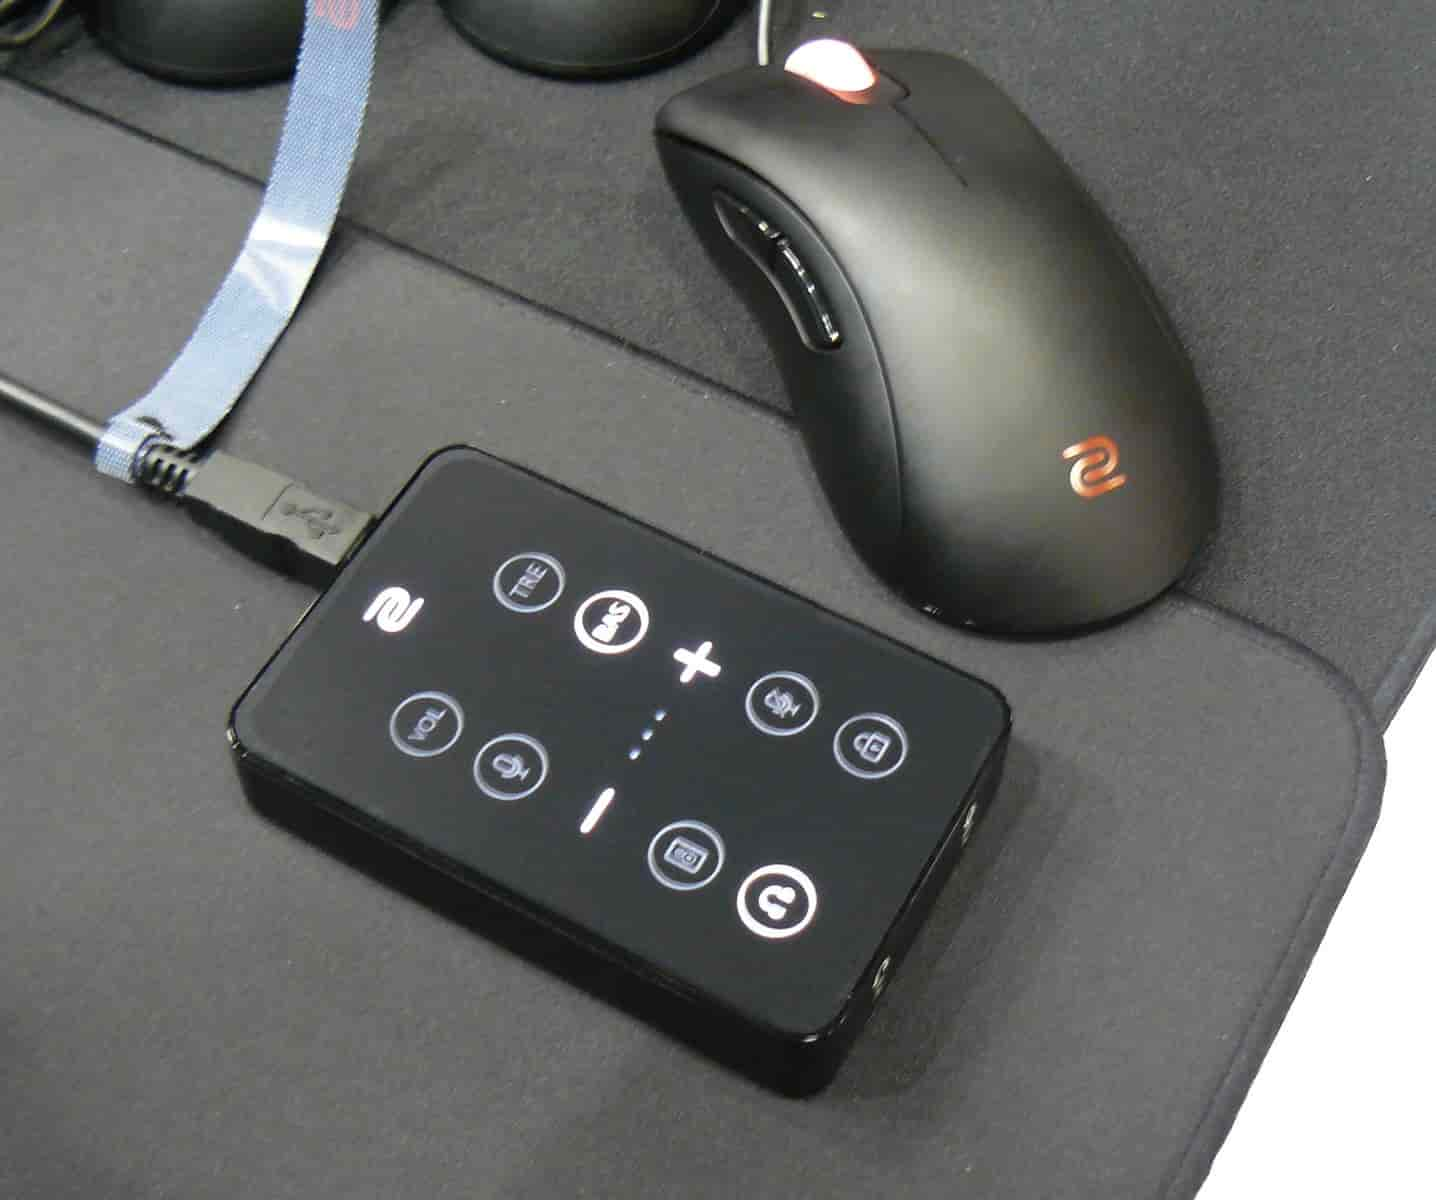 zowie-sbobet-review